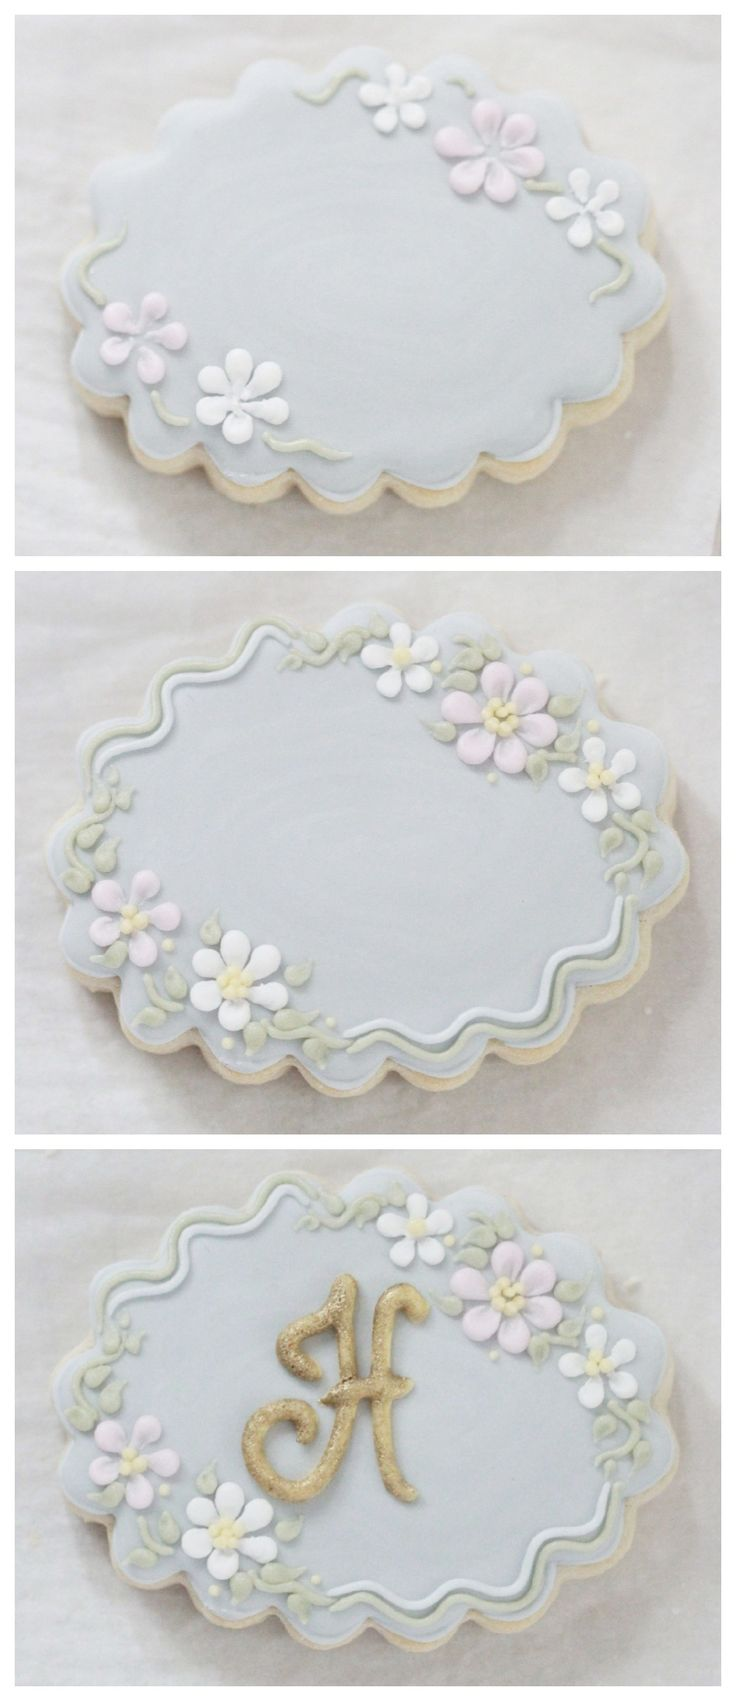 Decorating Monogram Cookie Steps